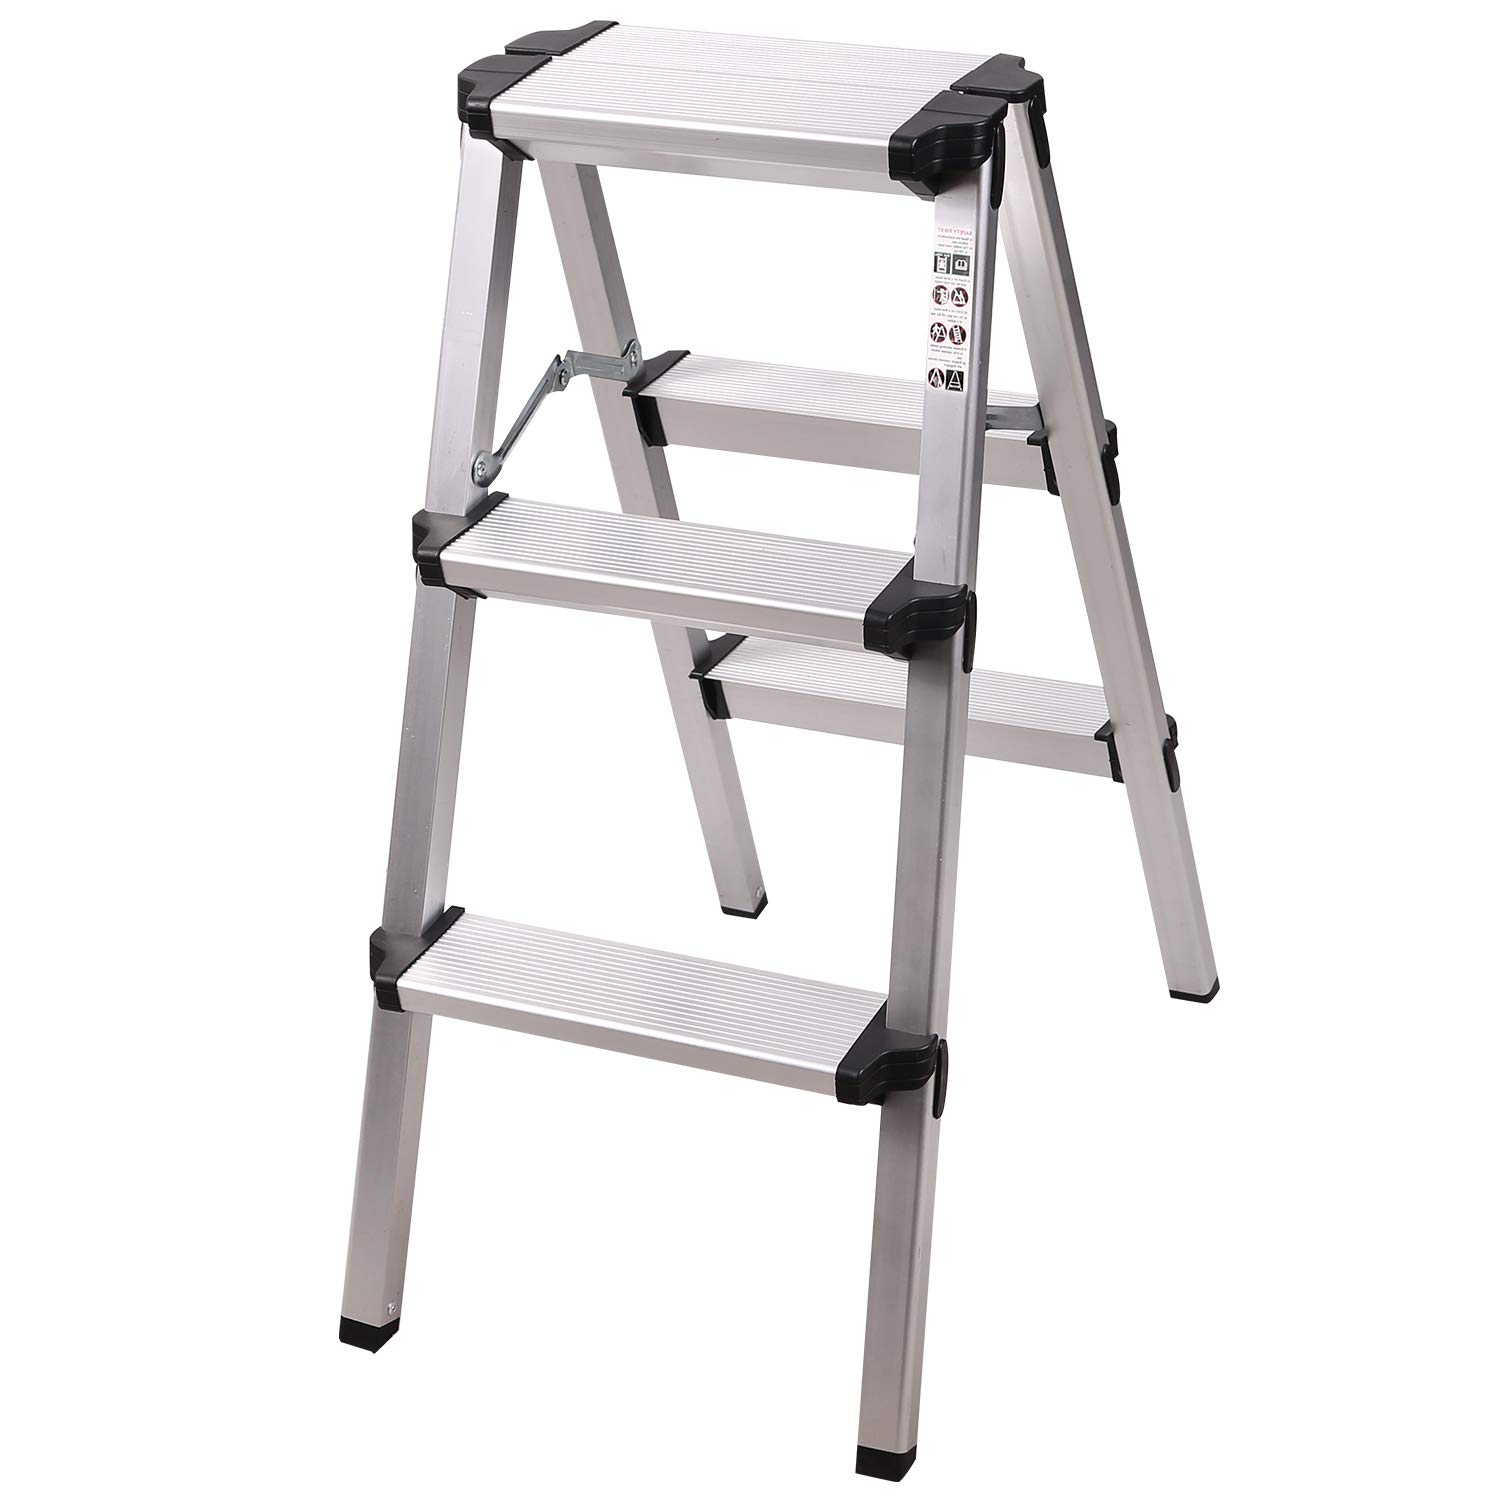 Redcamp Aluminum 3 Step Ladder Lightweight Folding Small Ladder Step Stool For Rv Kitchen Closet Supports 330lbs Capacity White 2 2 Feet Amazon Com